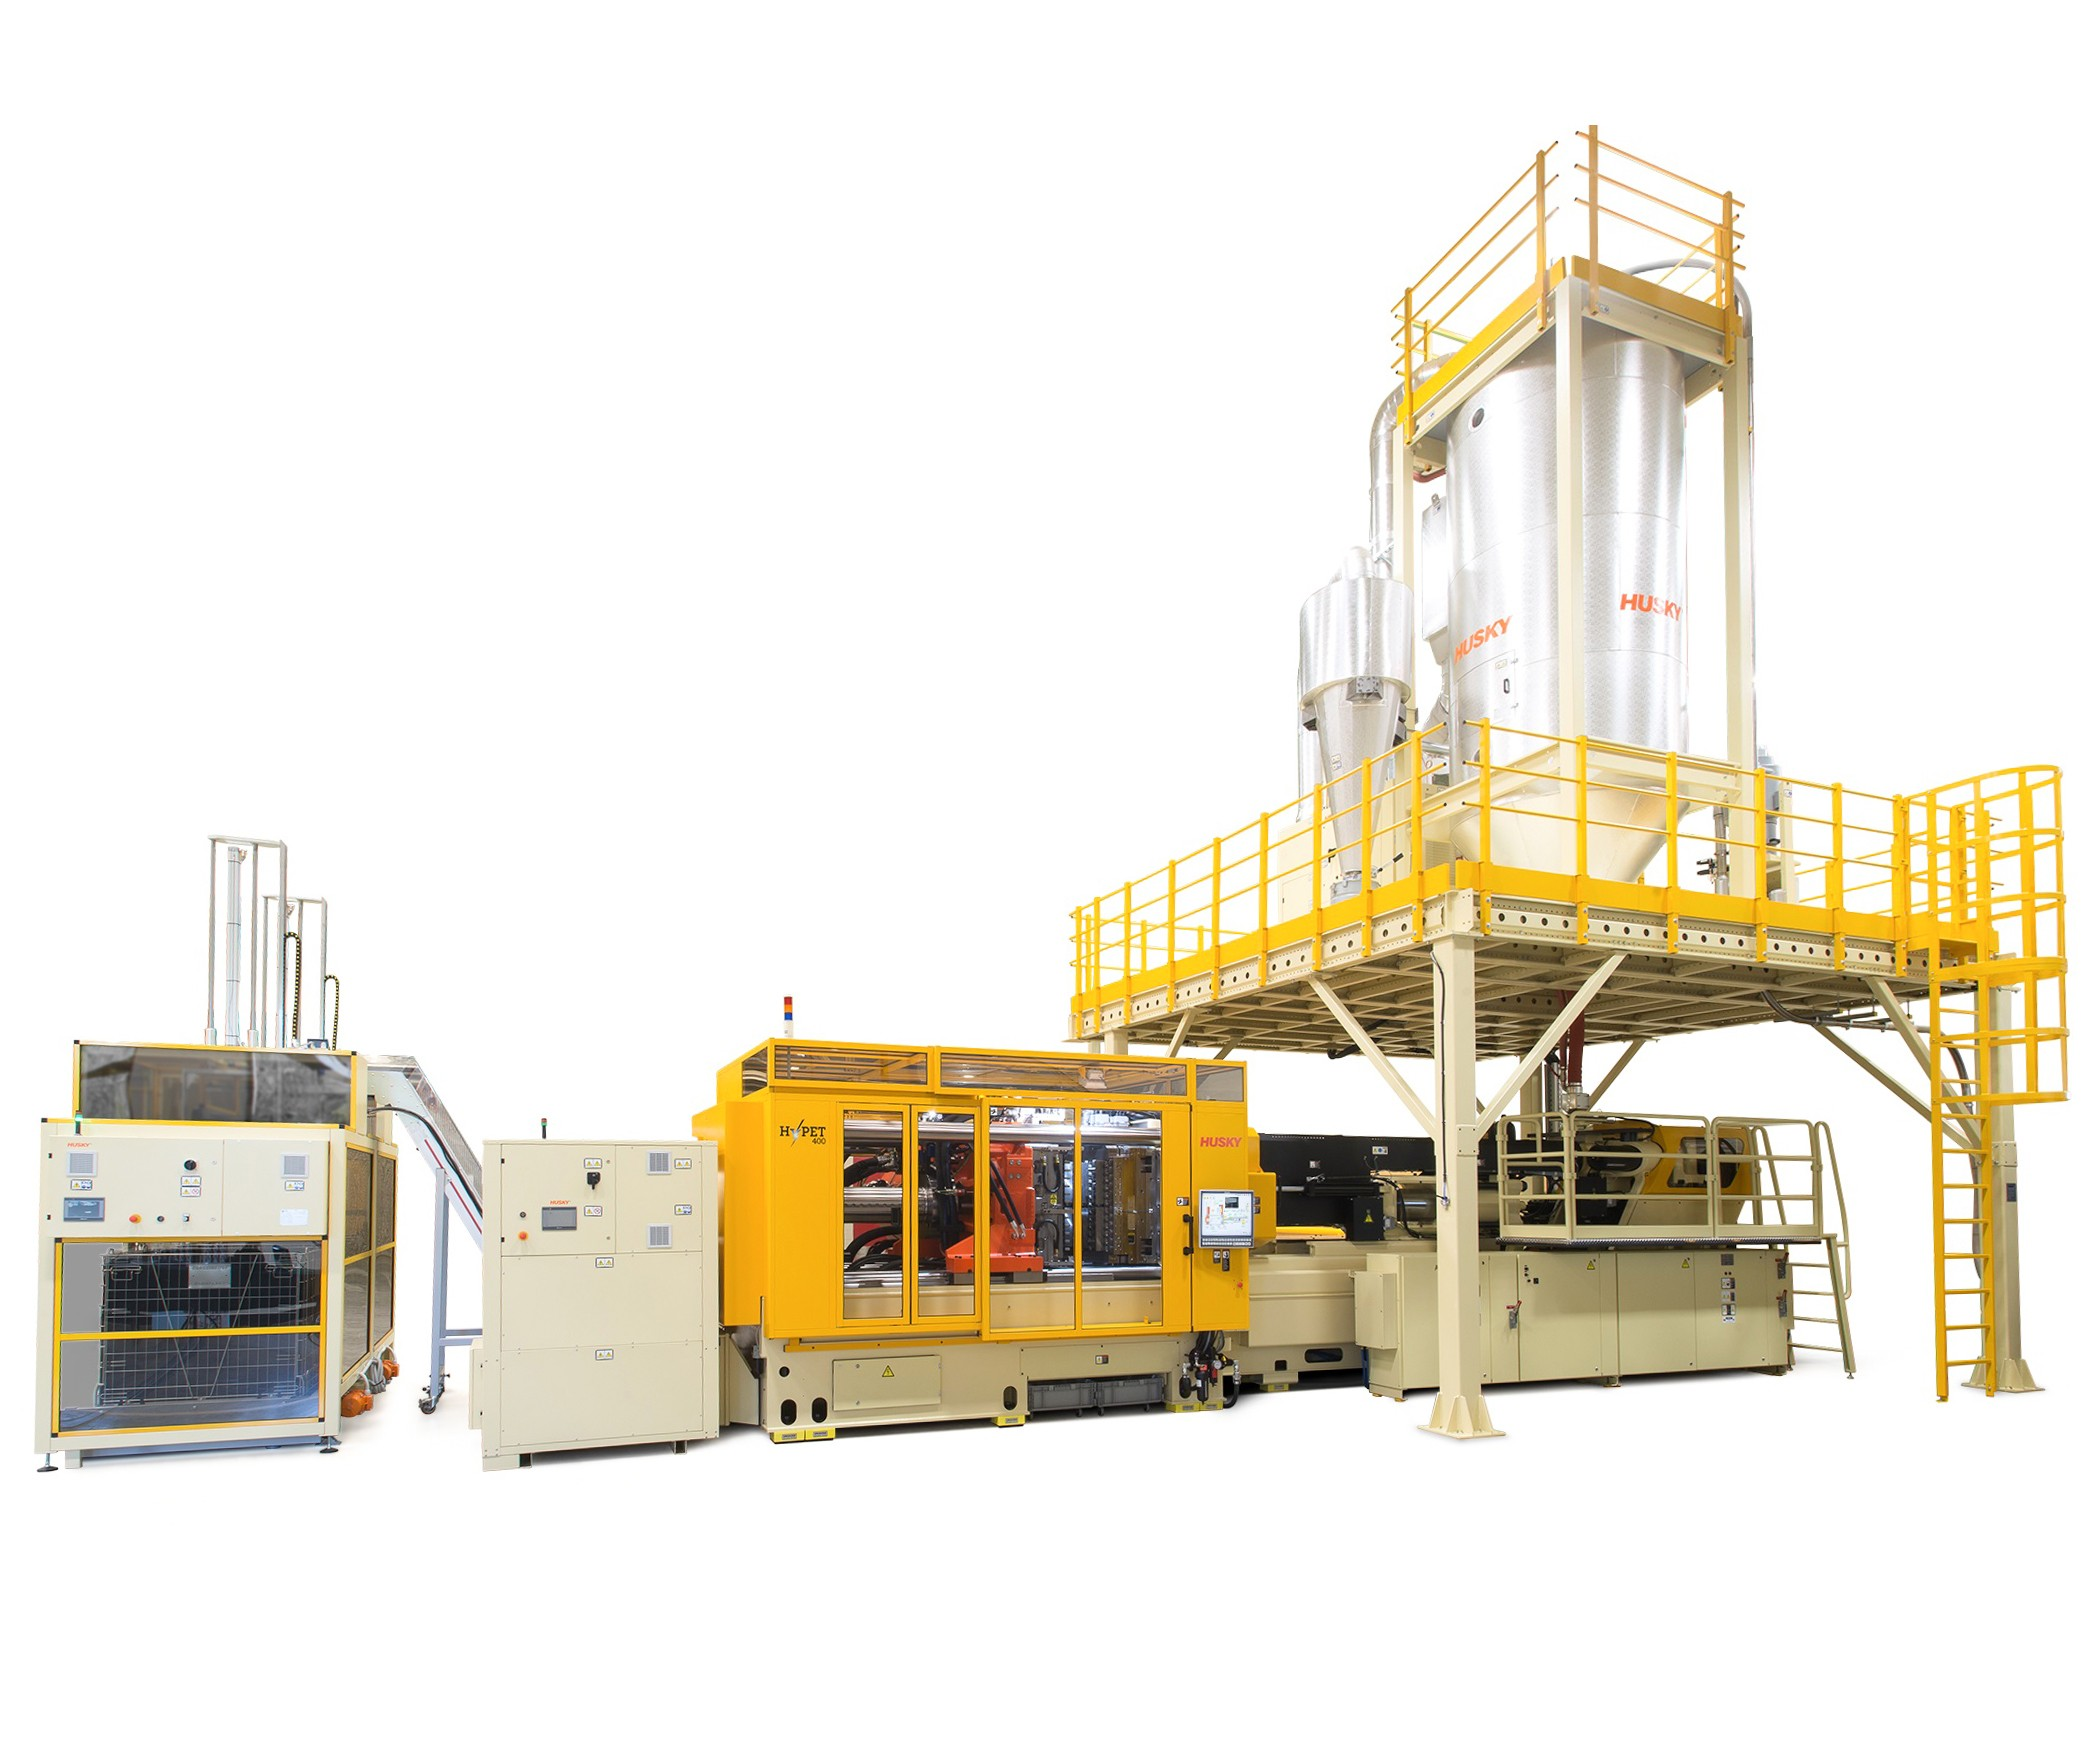 Husky HyPET system for injection molding PET preforms.